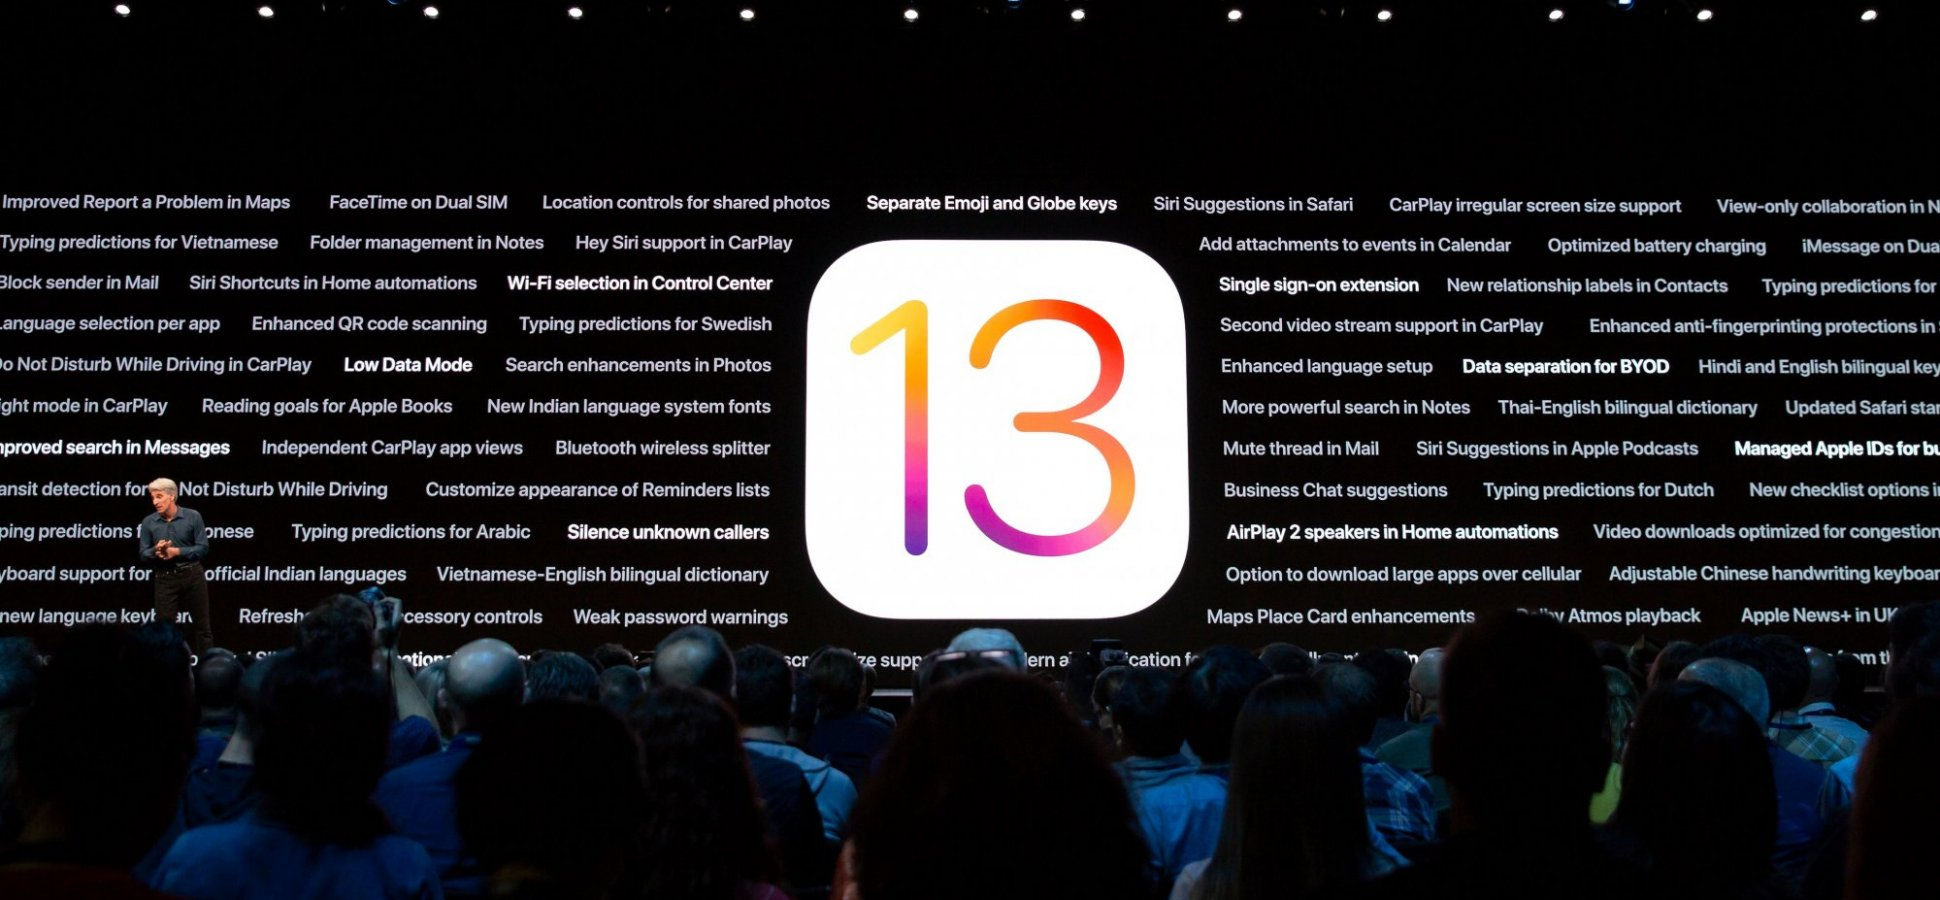 This 1 Feature of iOS 13 Tells You Everything You Need to Know About Why Apple is Different Than Google or Facebook